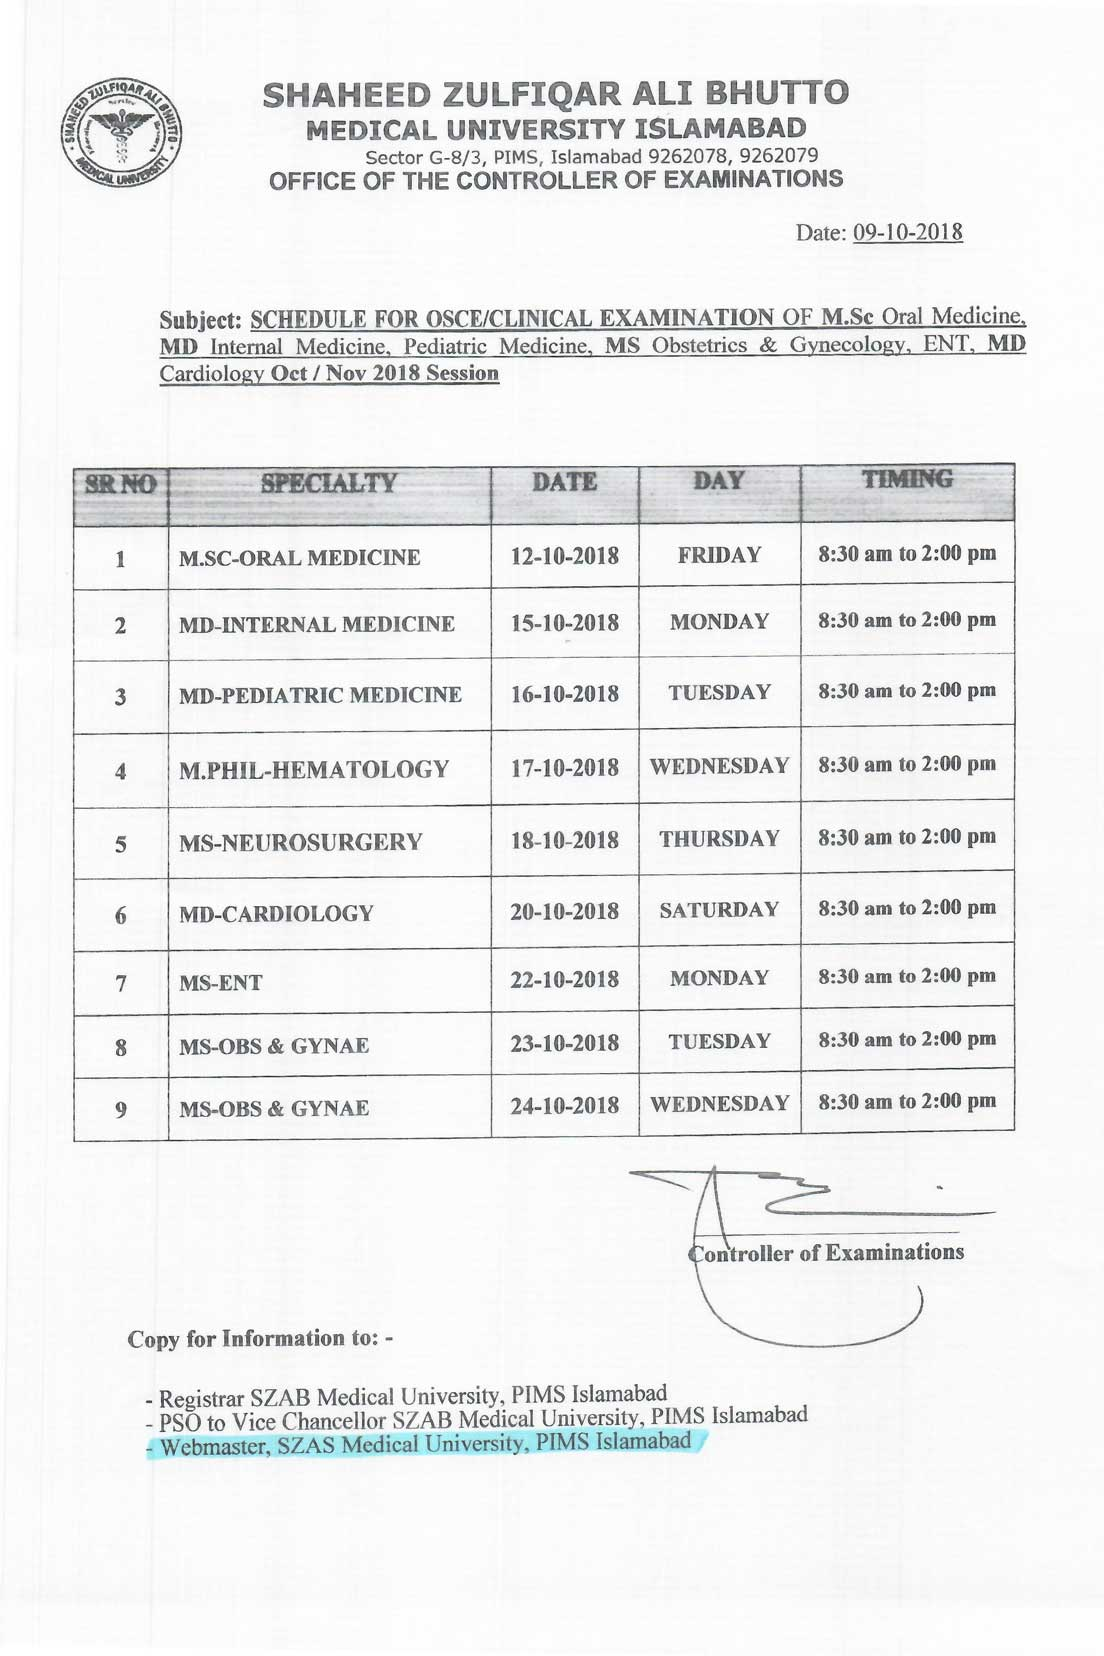 Schedule of Viva/Clinical Exam Oct/Nov Session 2018